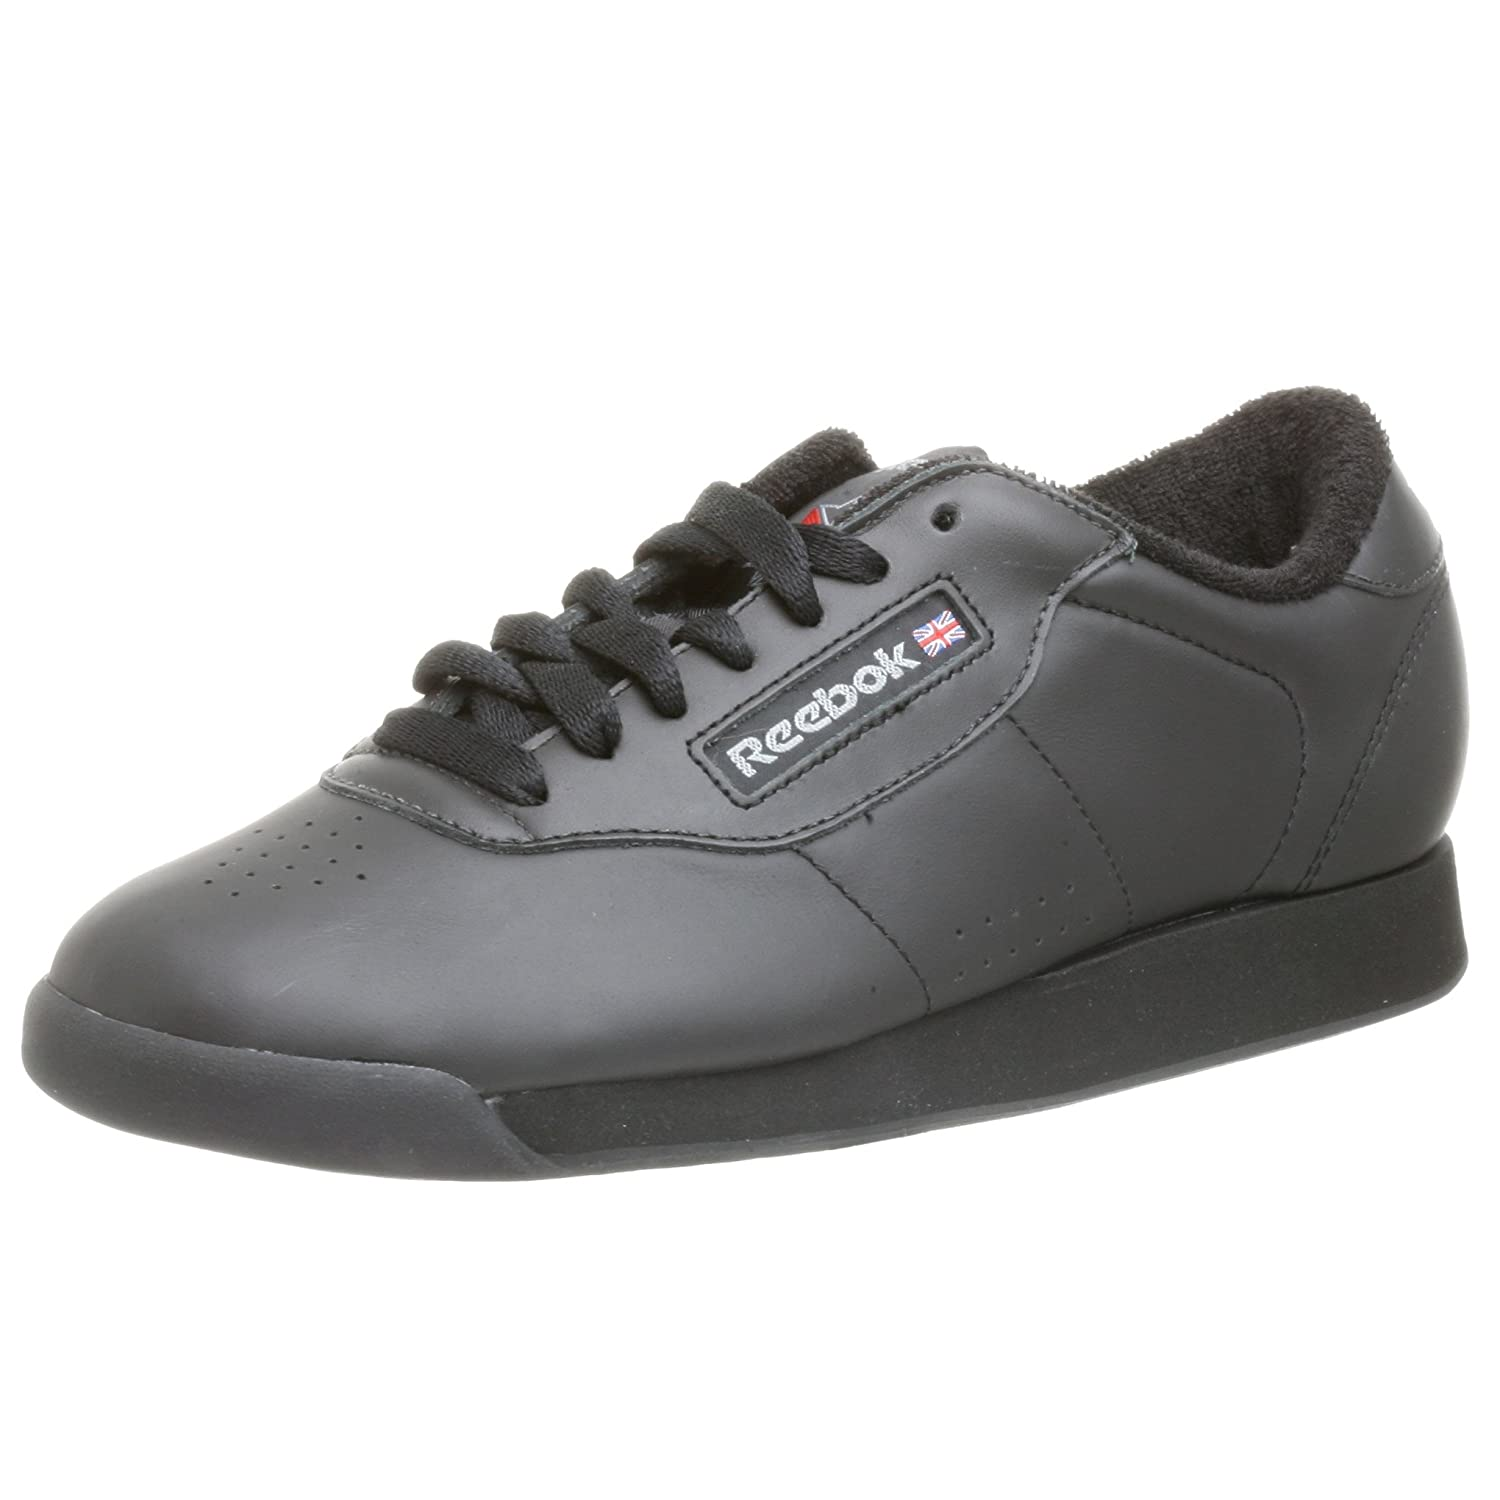 Reebok Classics Women s Princess Fashion Sneakers  Amazon.ca  Shoes    Handbags 2832f70d15